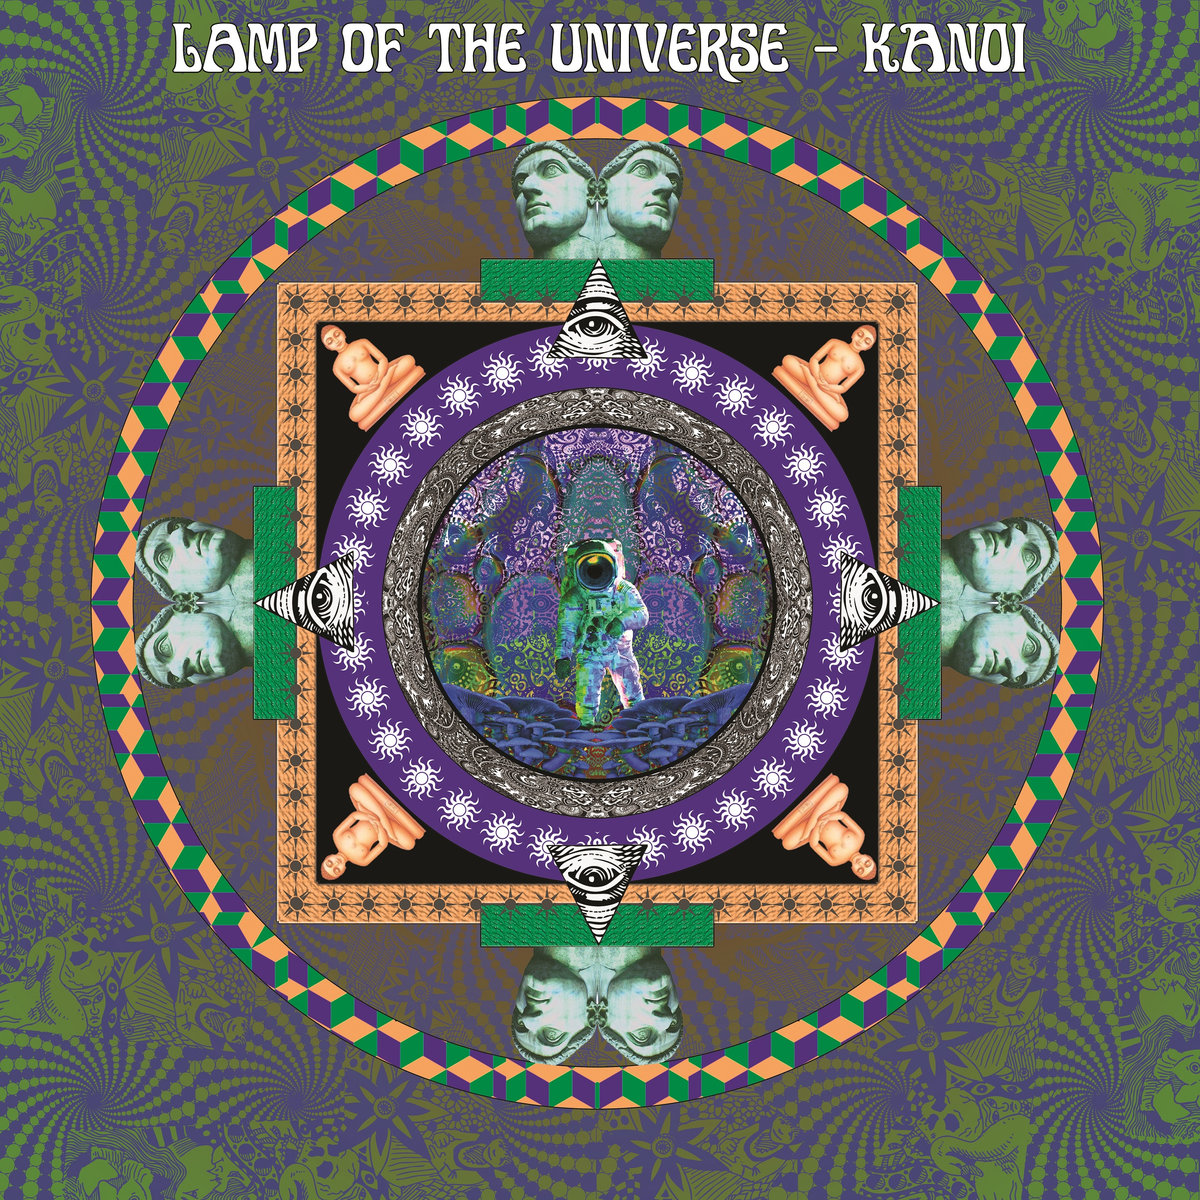 lamp-of-the-universe-kanoi-split